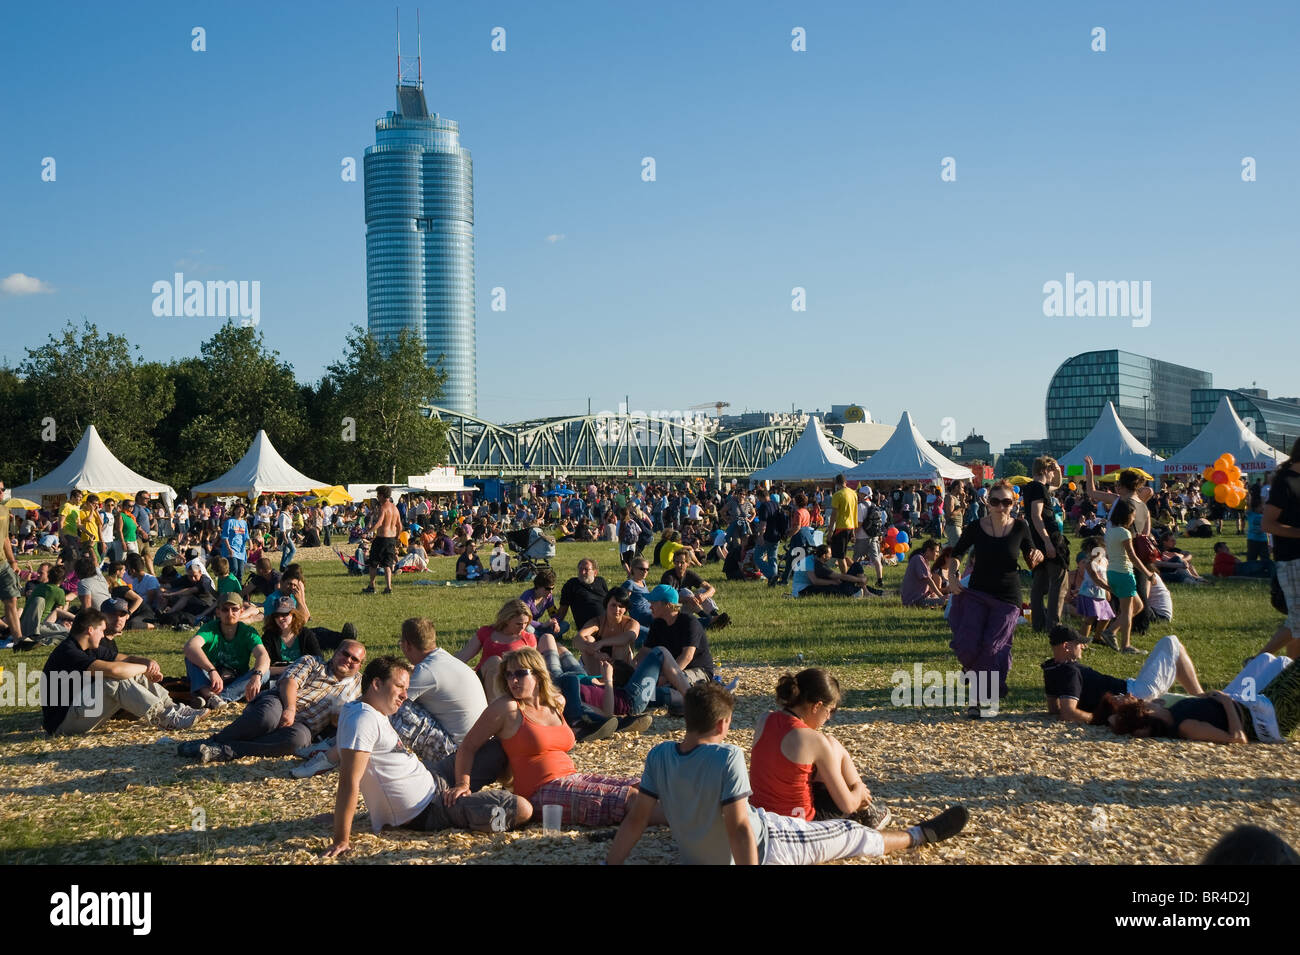 Donauinselfest: Wien, Donauinselfest Stock Photo, Royalty Free Image